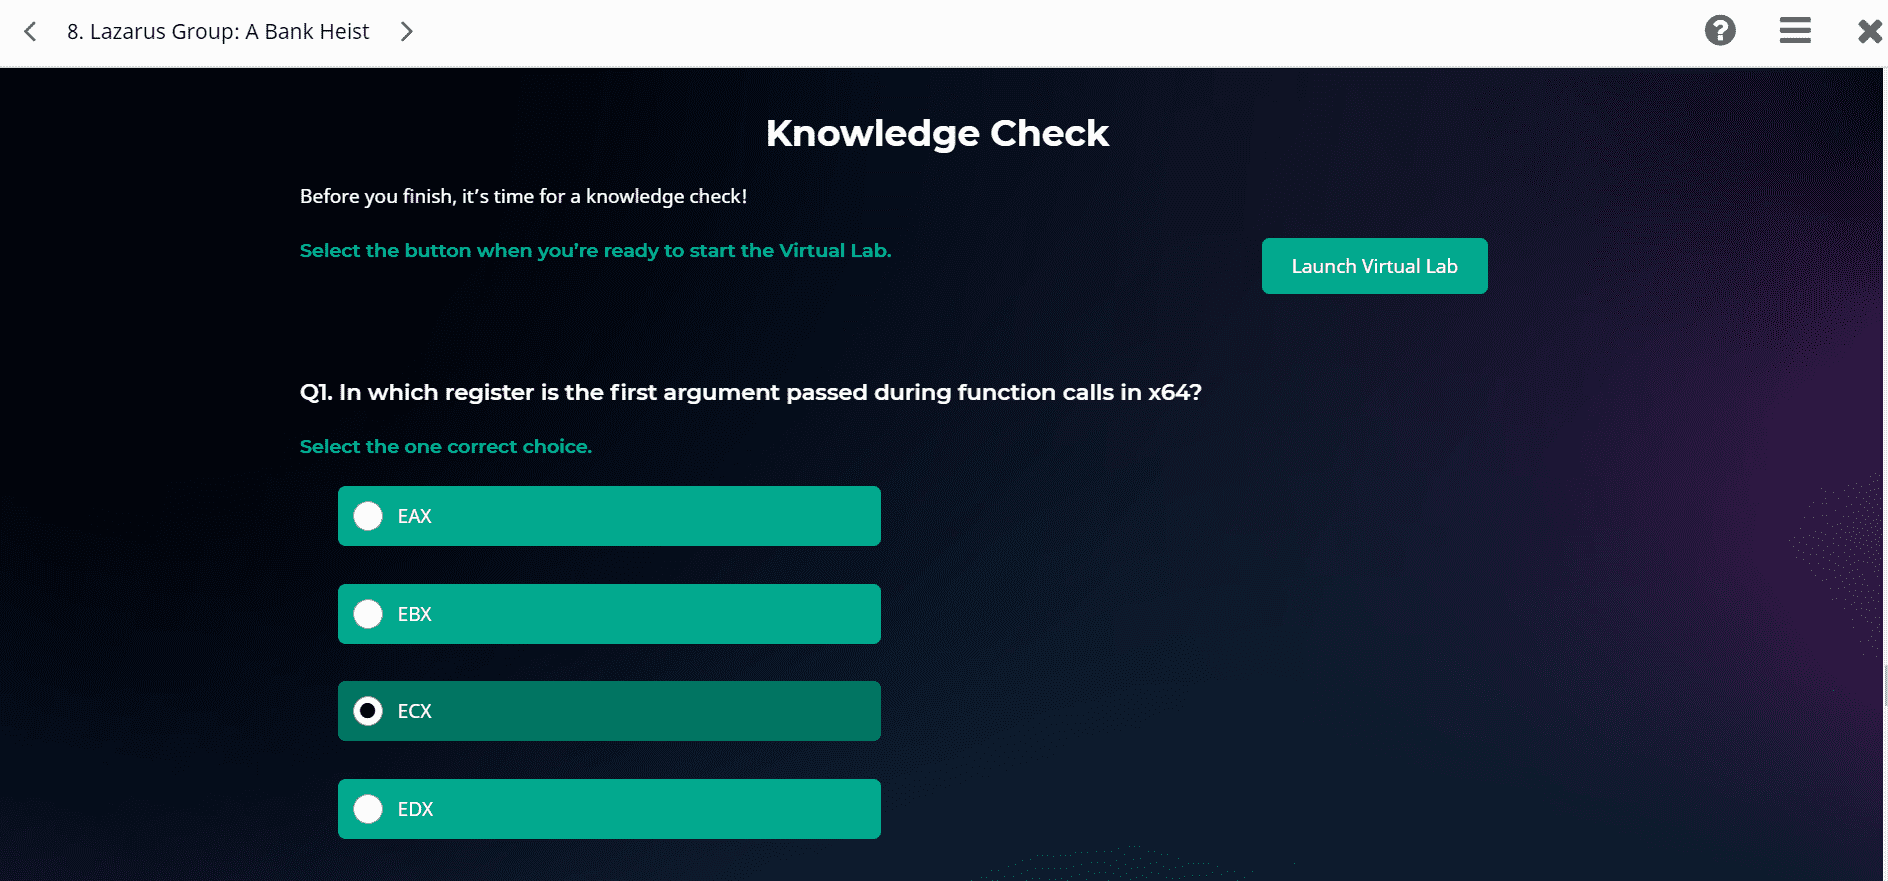 KL-Training-knowledgecheck-2.png